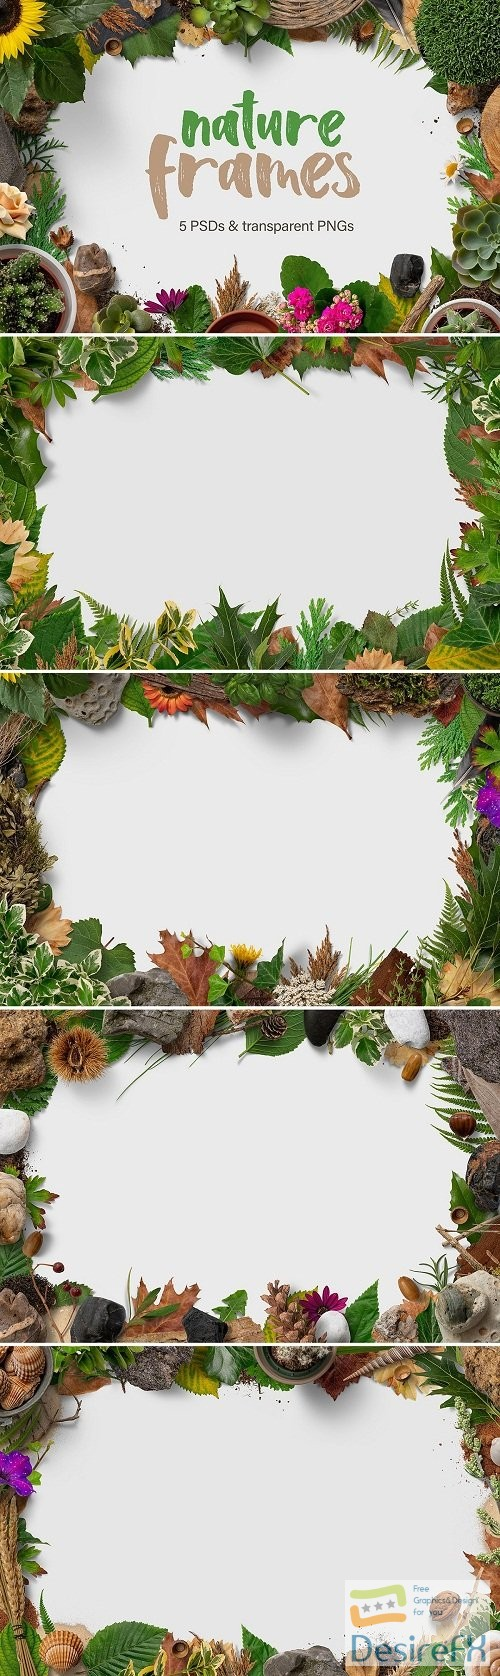 photoshop - 5 Nature Frames - 3083384